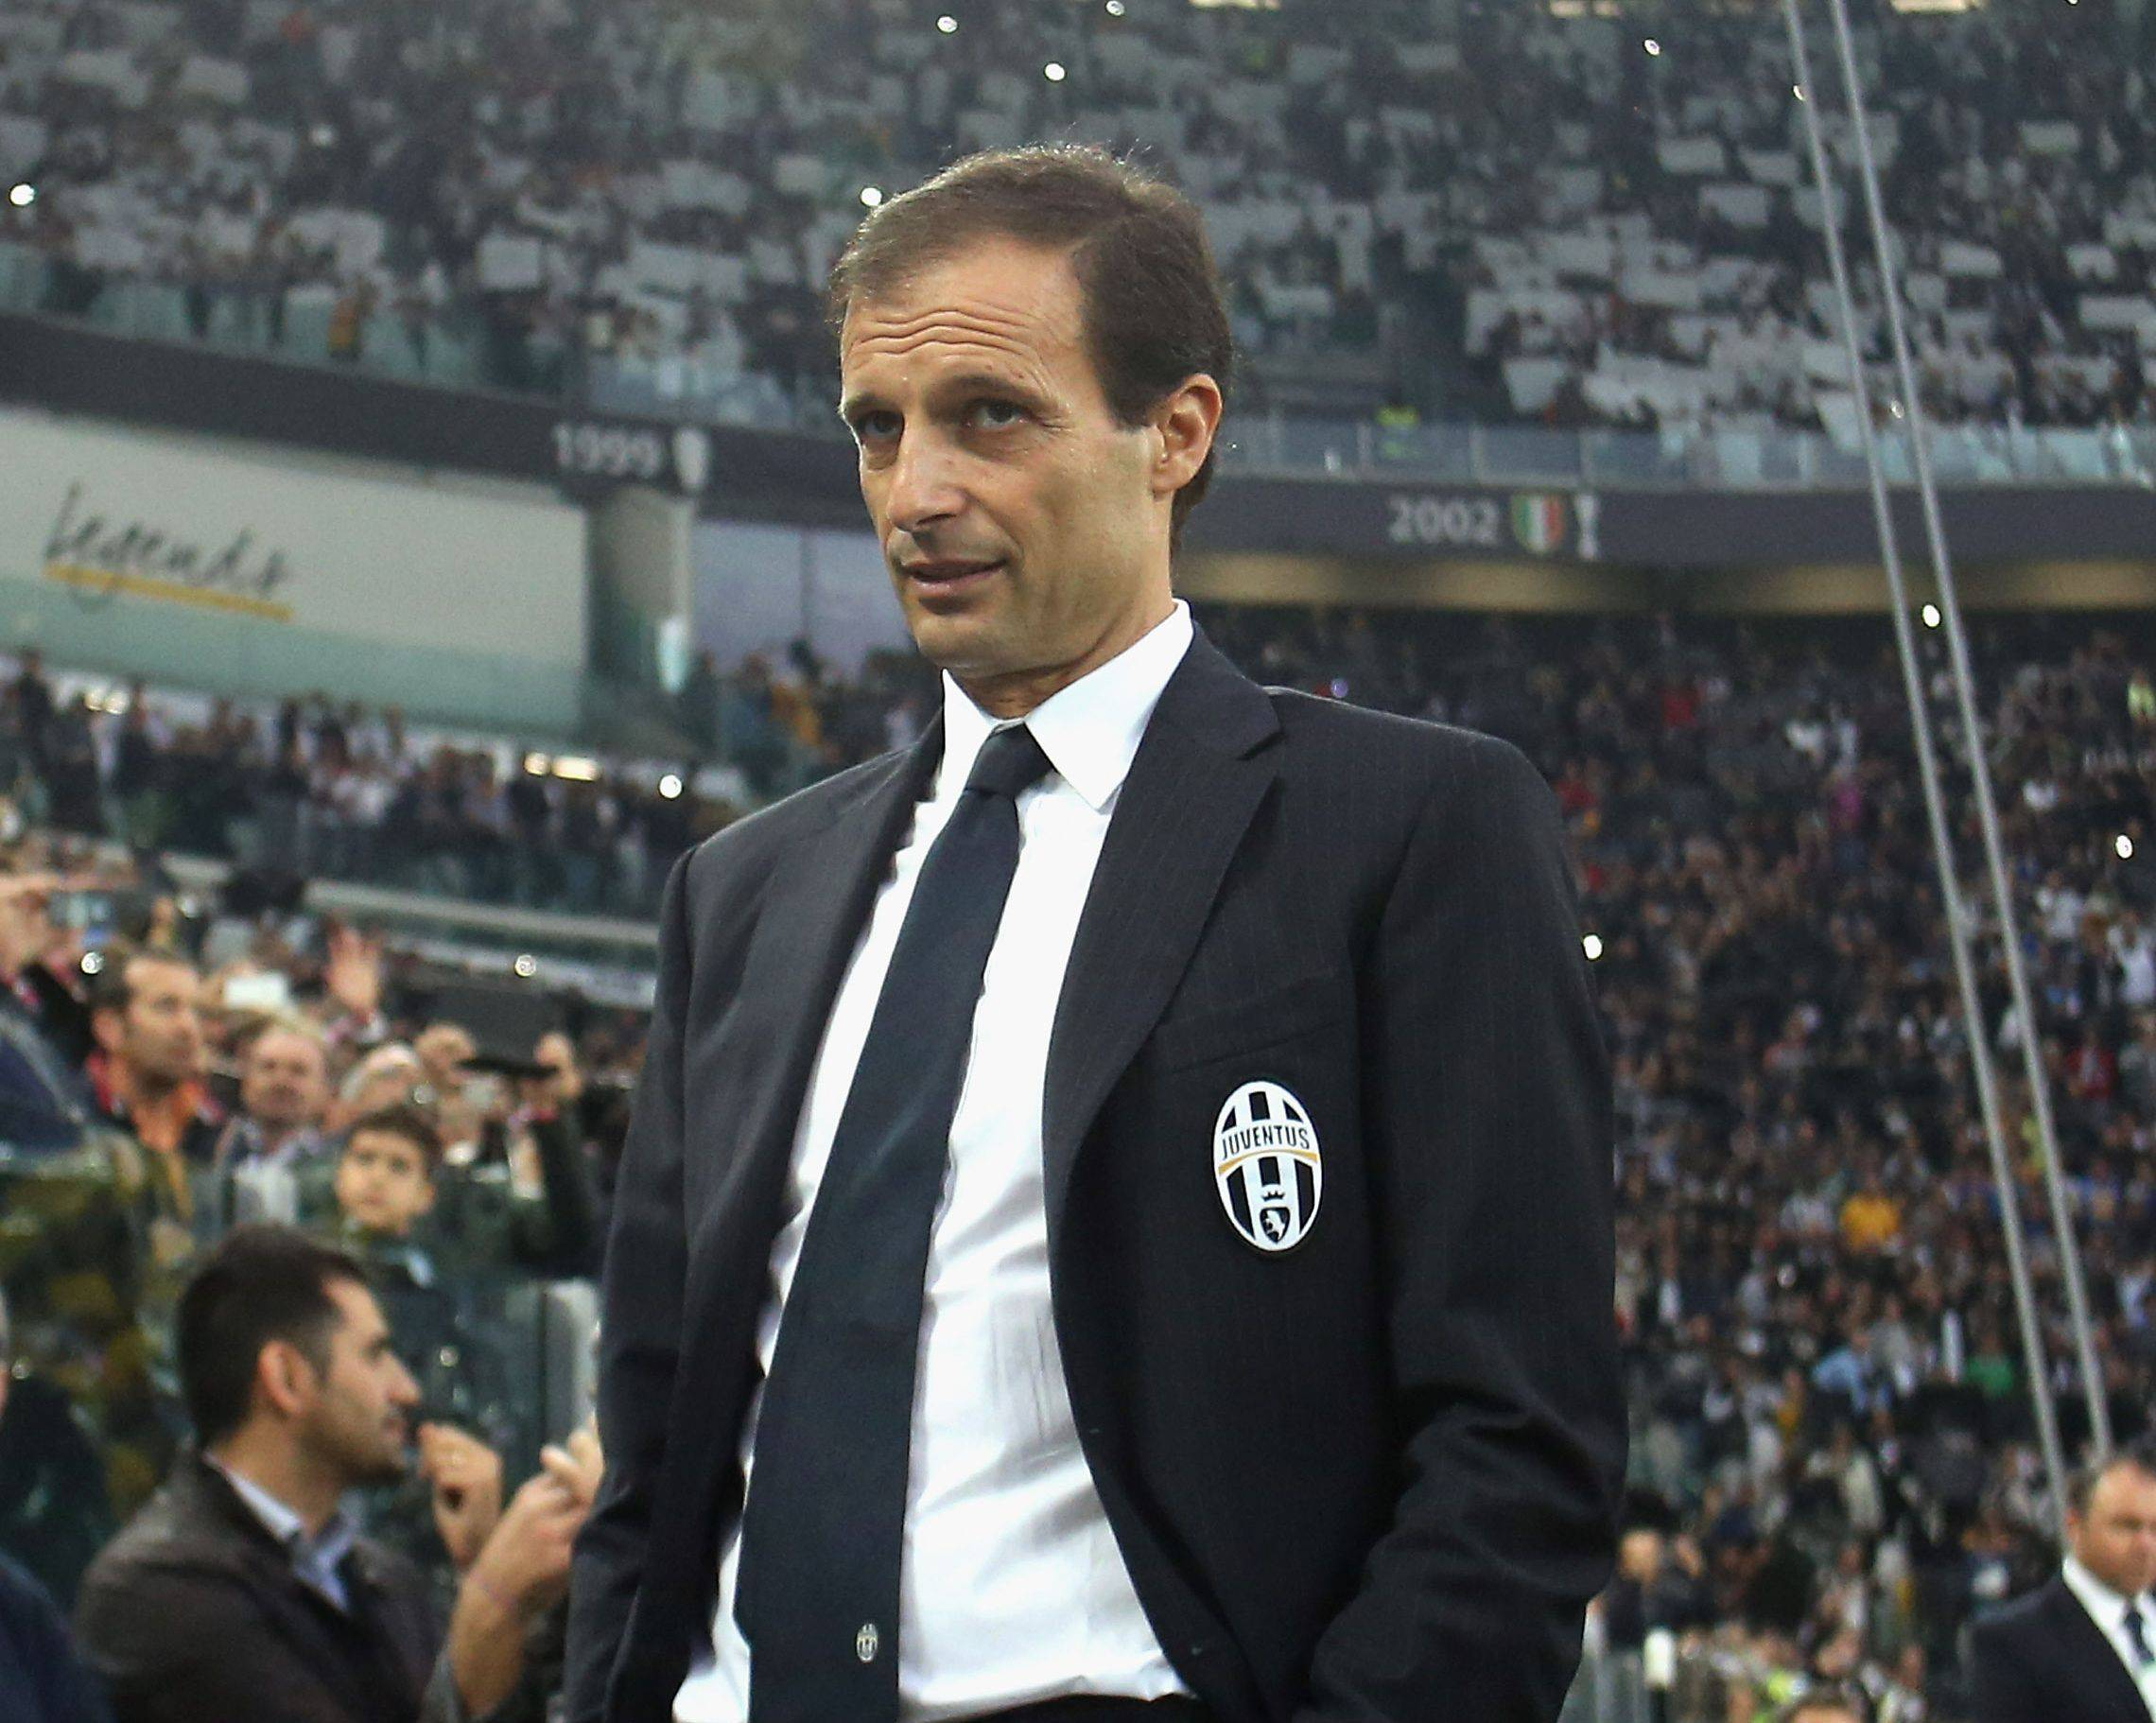 allegri juventus - photo #8